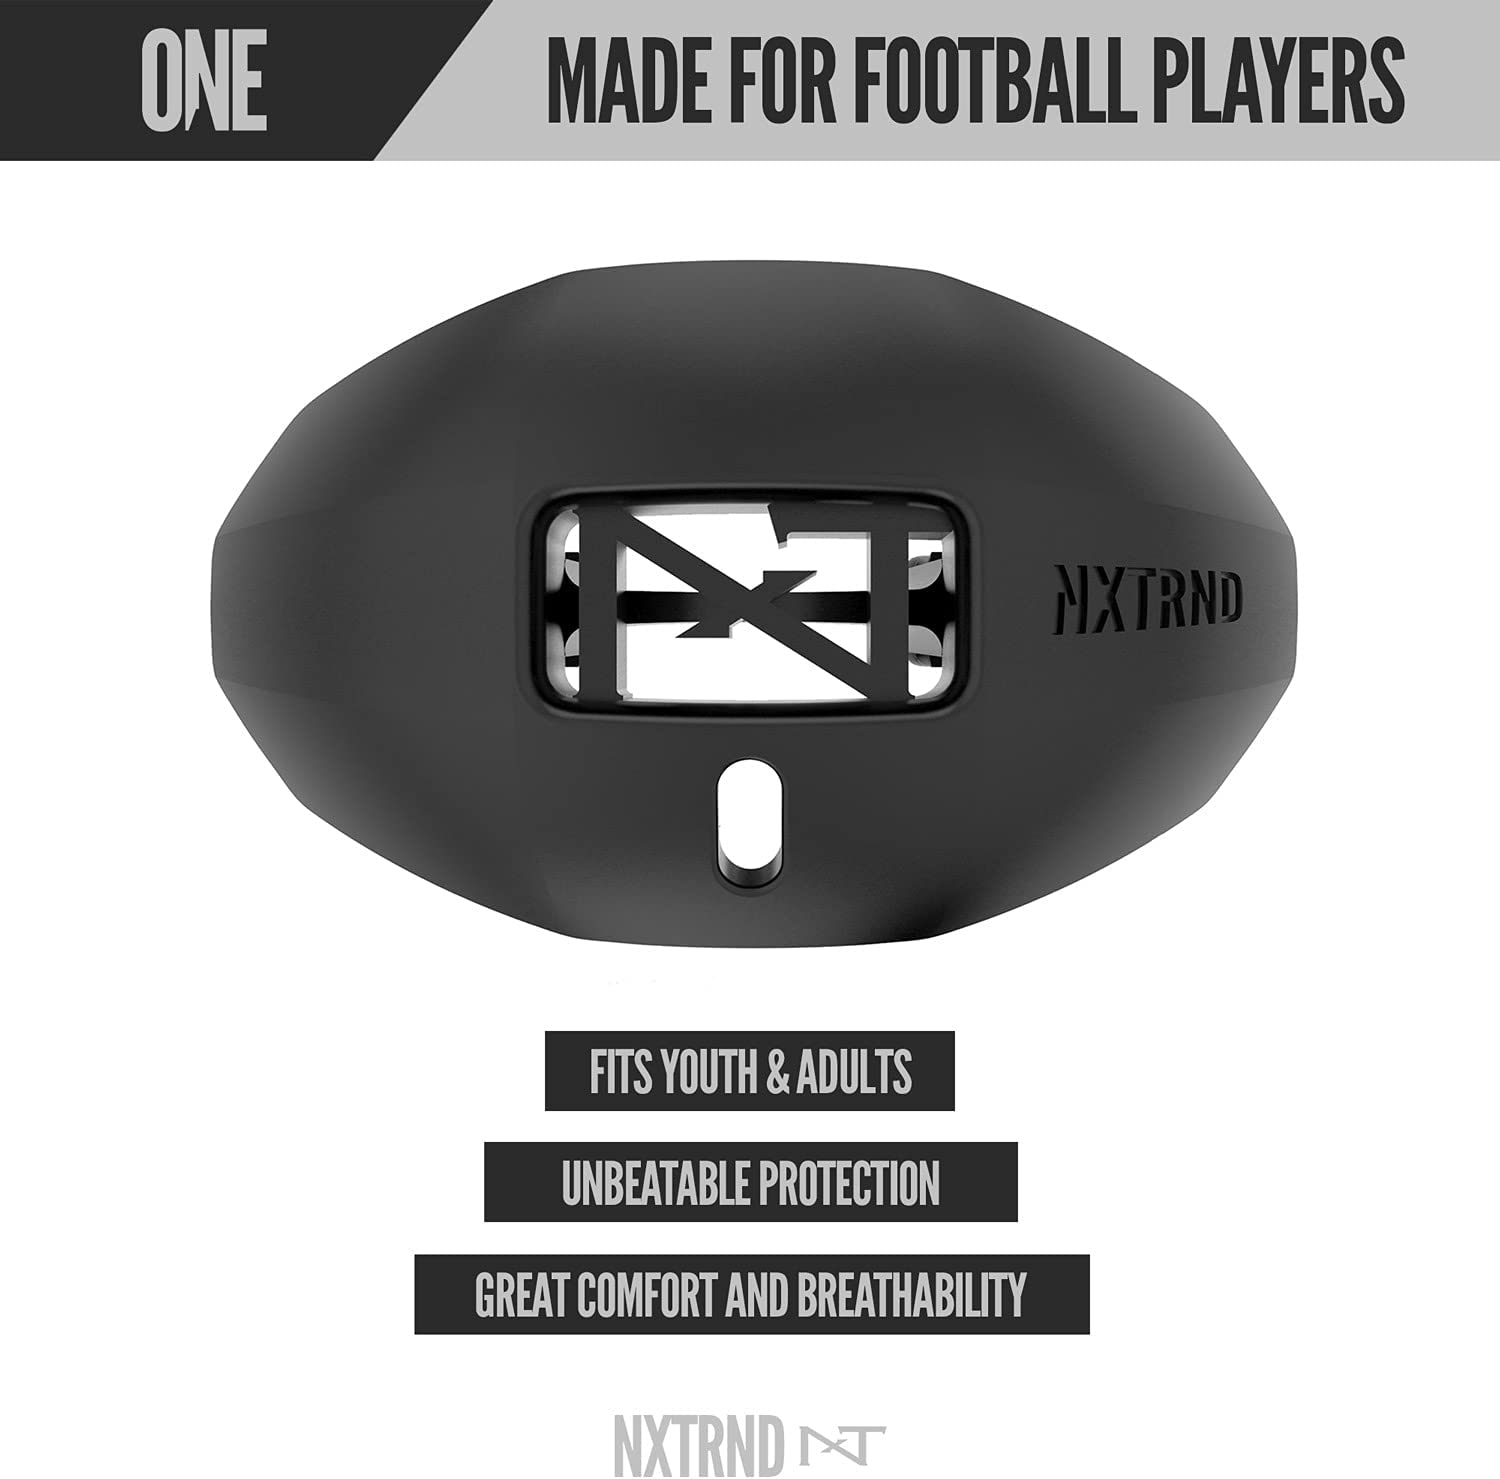 Compatible with Braces Football Mouth Guard for Youth /& Adults Nxtrnd One Mouth Guard Sports Mouth Guard Football Lip Protector with Detachable Strap